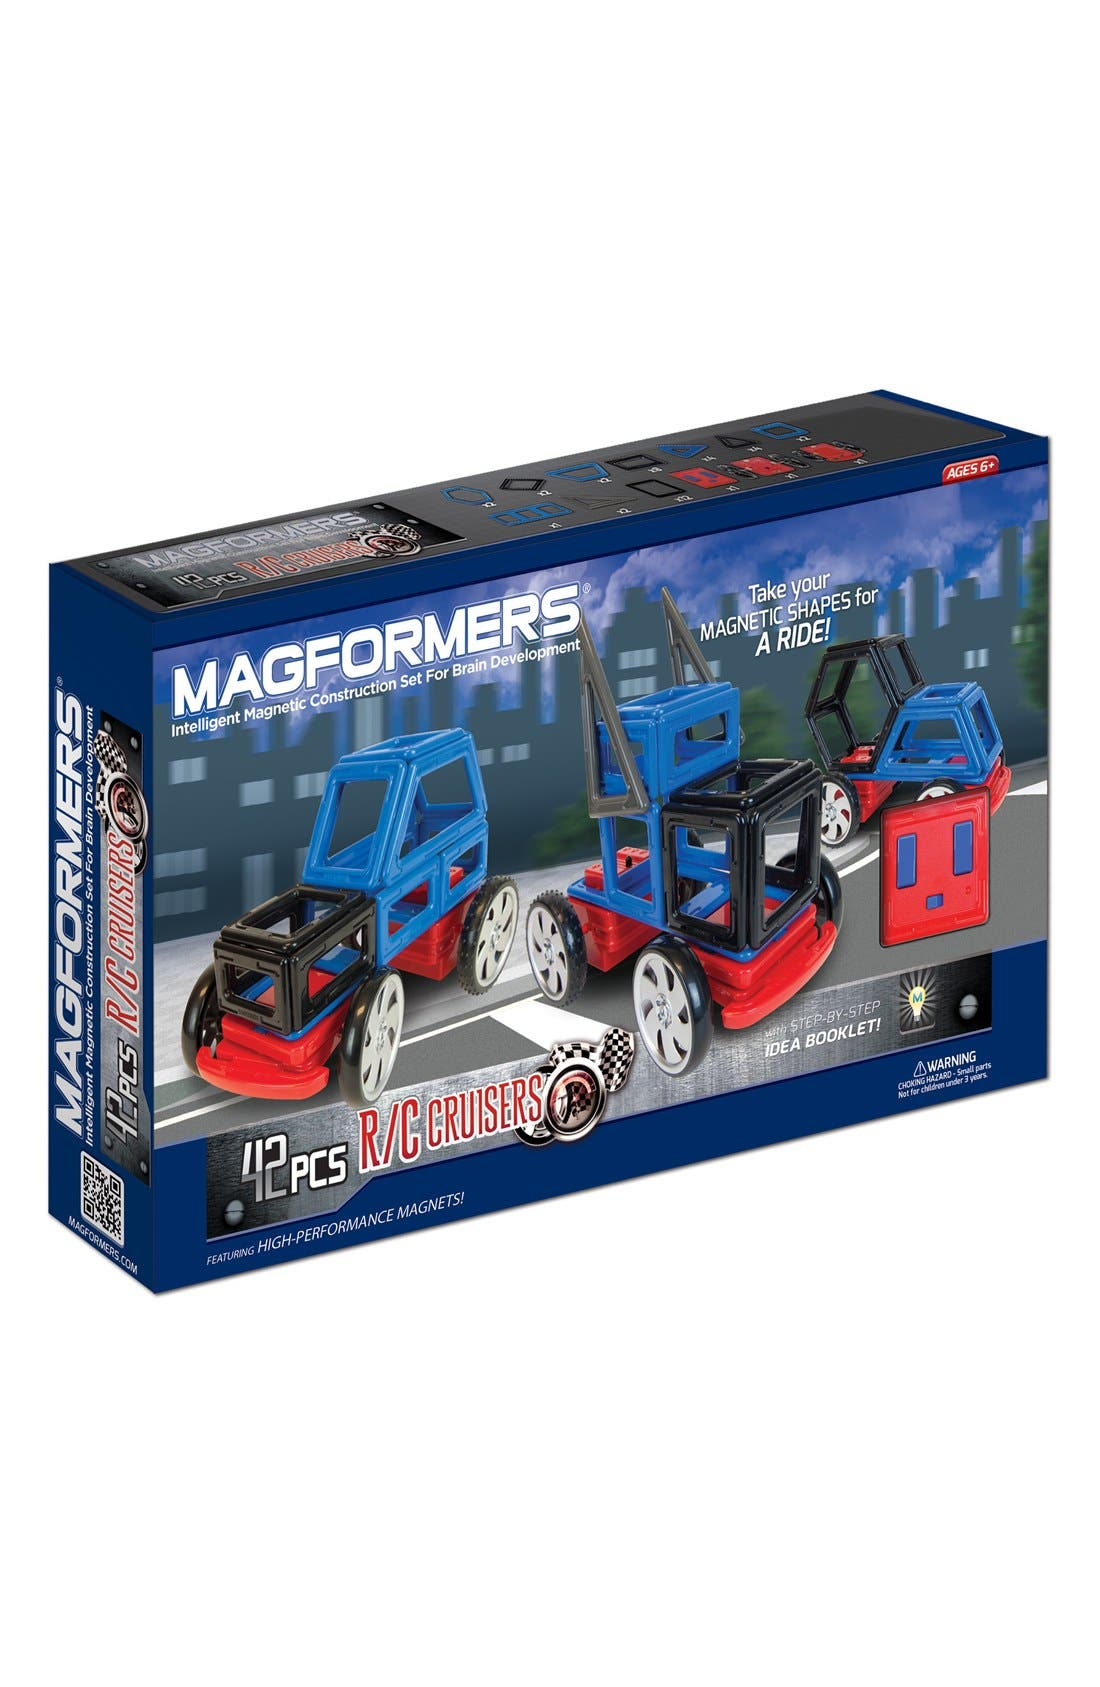 'R/C Cruiser' Magnetic Remote Control Vehicle Construction Kit,                             Main thumbnail 1, color,                             400